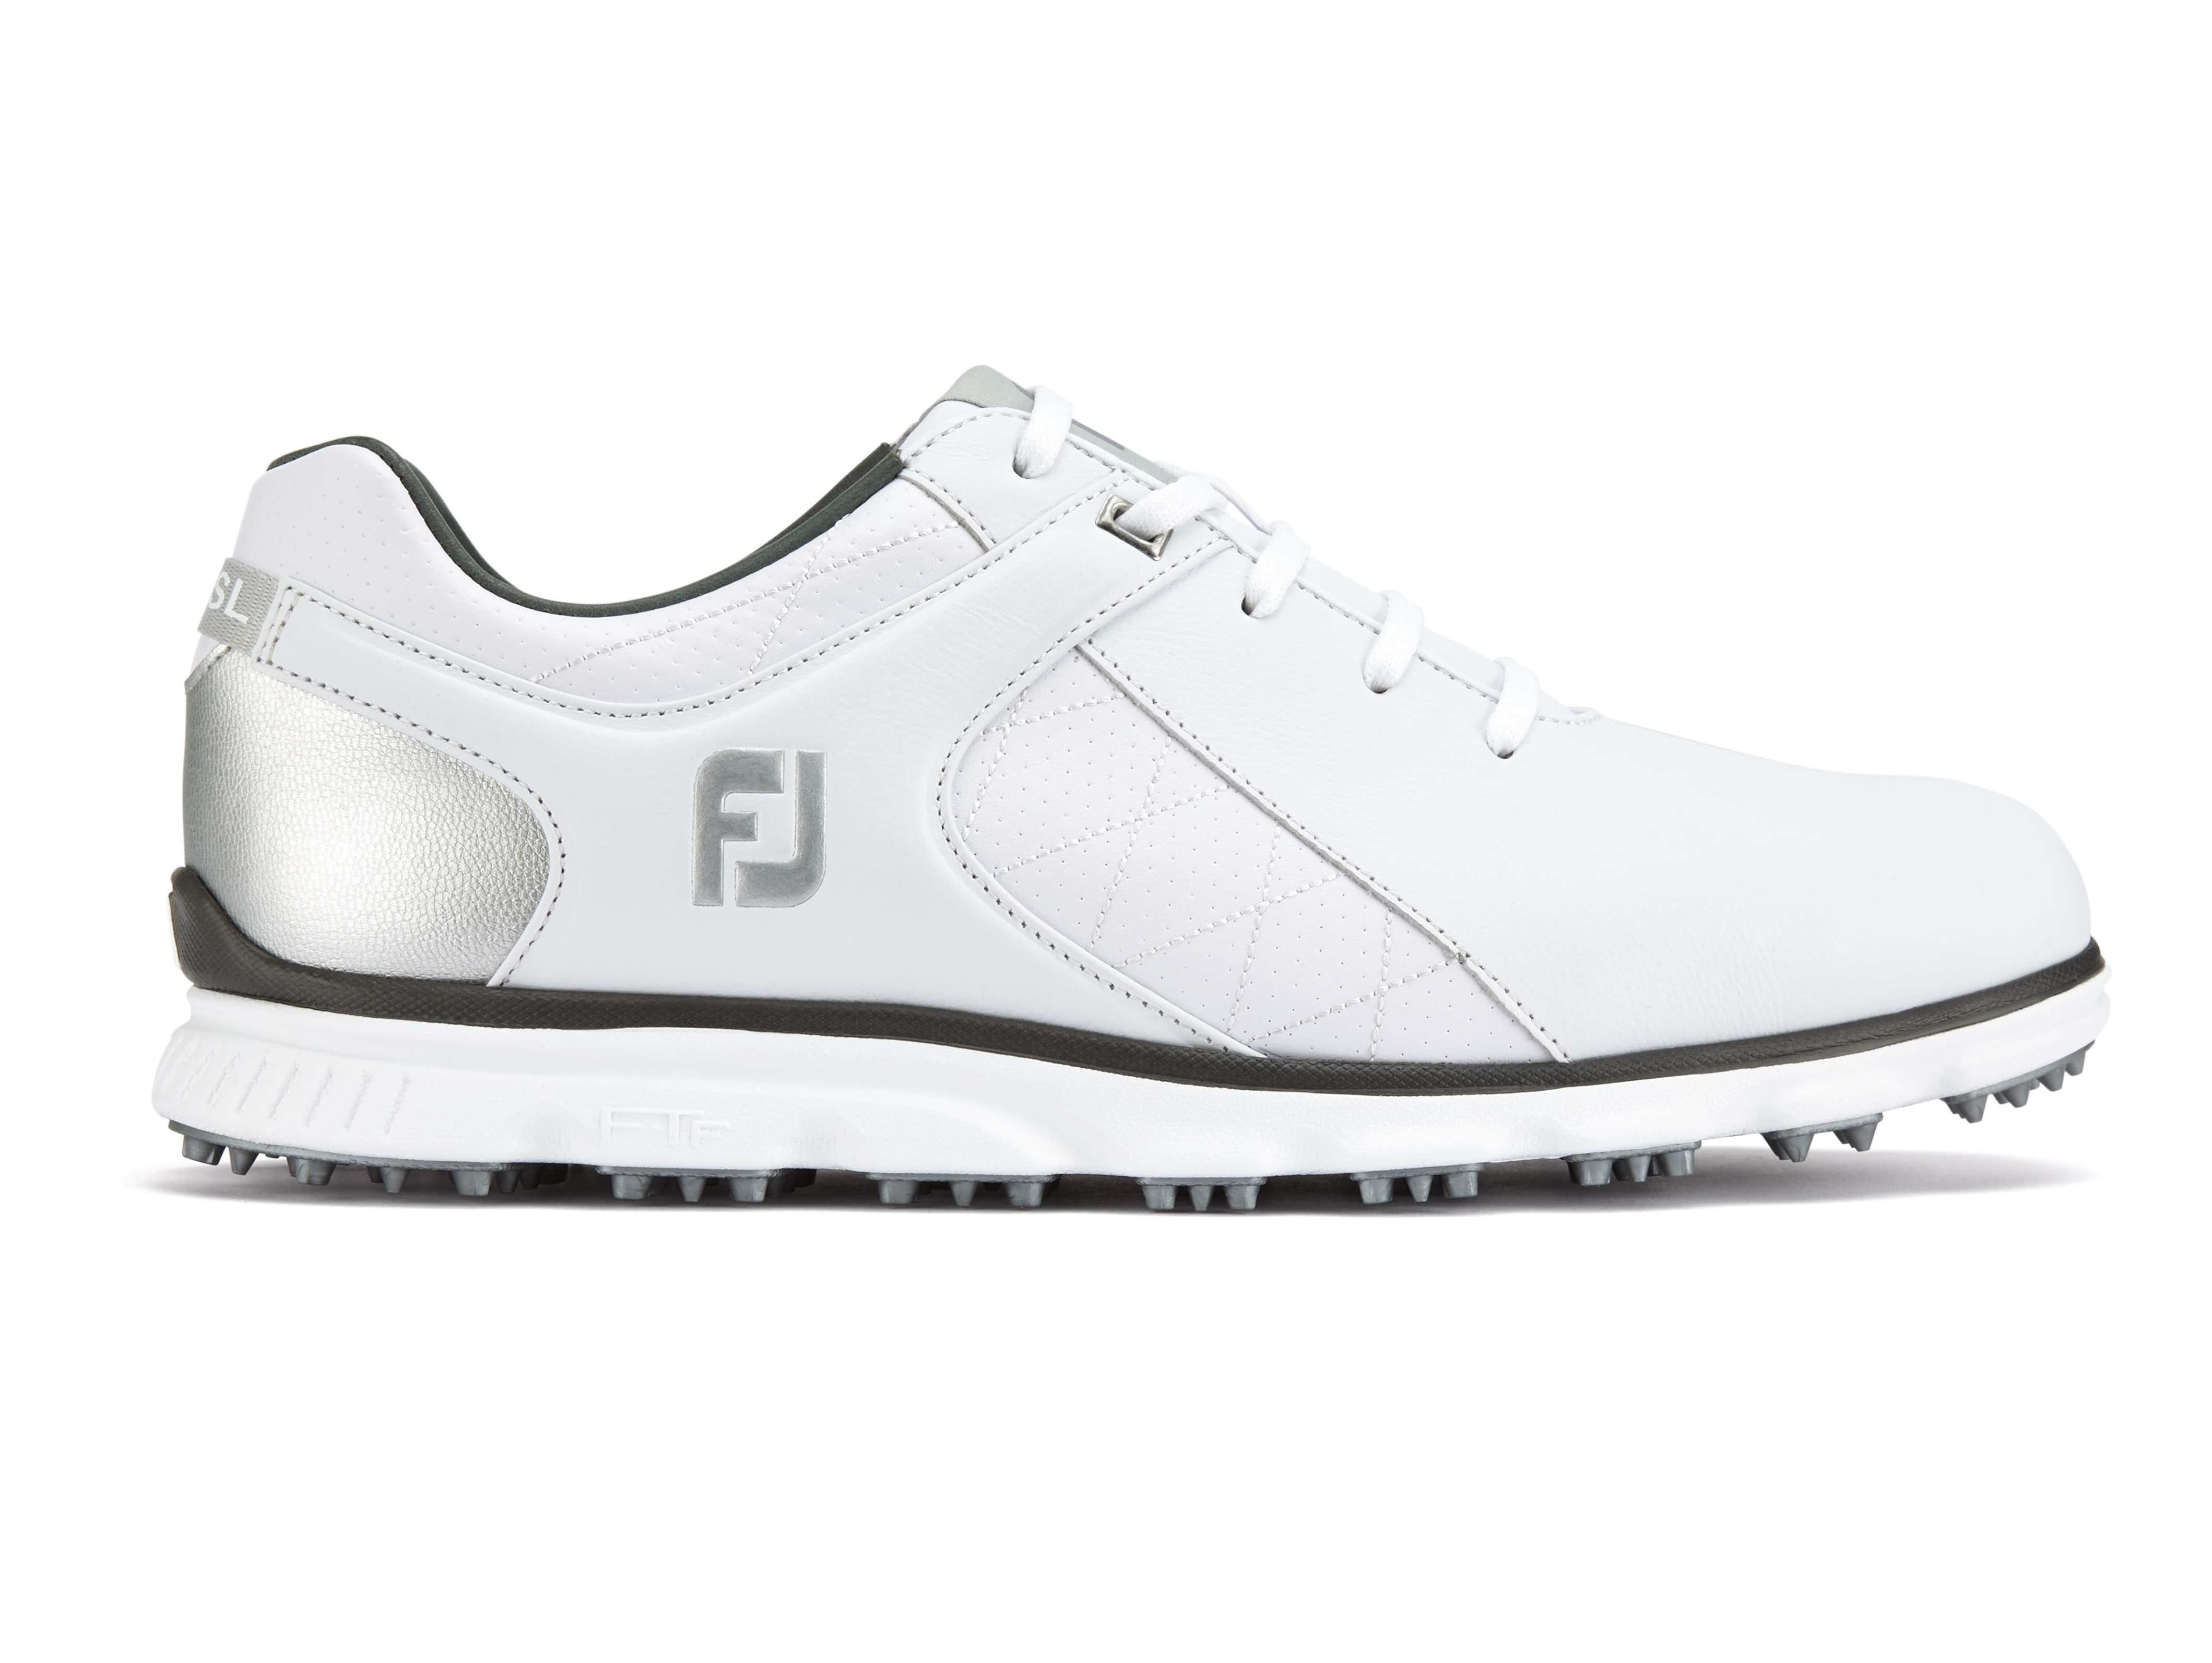 The FJ Pro/SL Shoe   First Launched At The Start Of 2017 And Now Part Of  The MyJoys Programme   Is A Match Made In Heaven For Golf At This Time Of  The ...